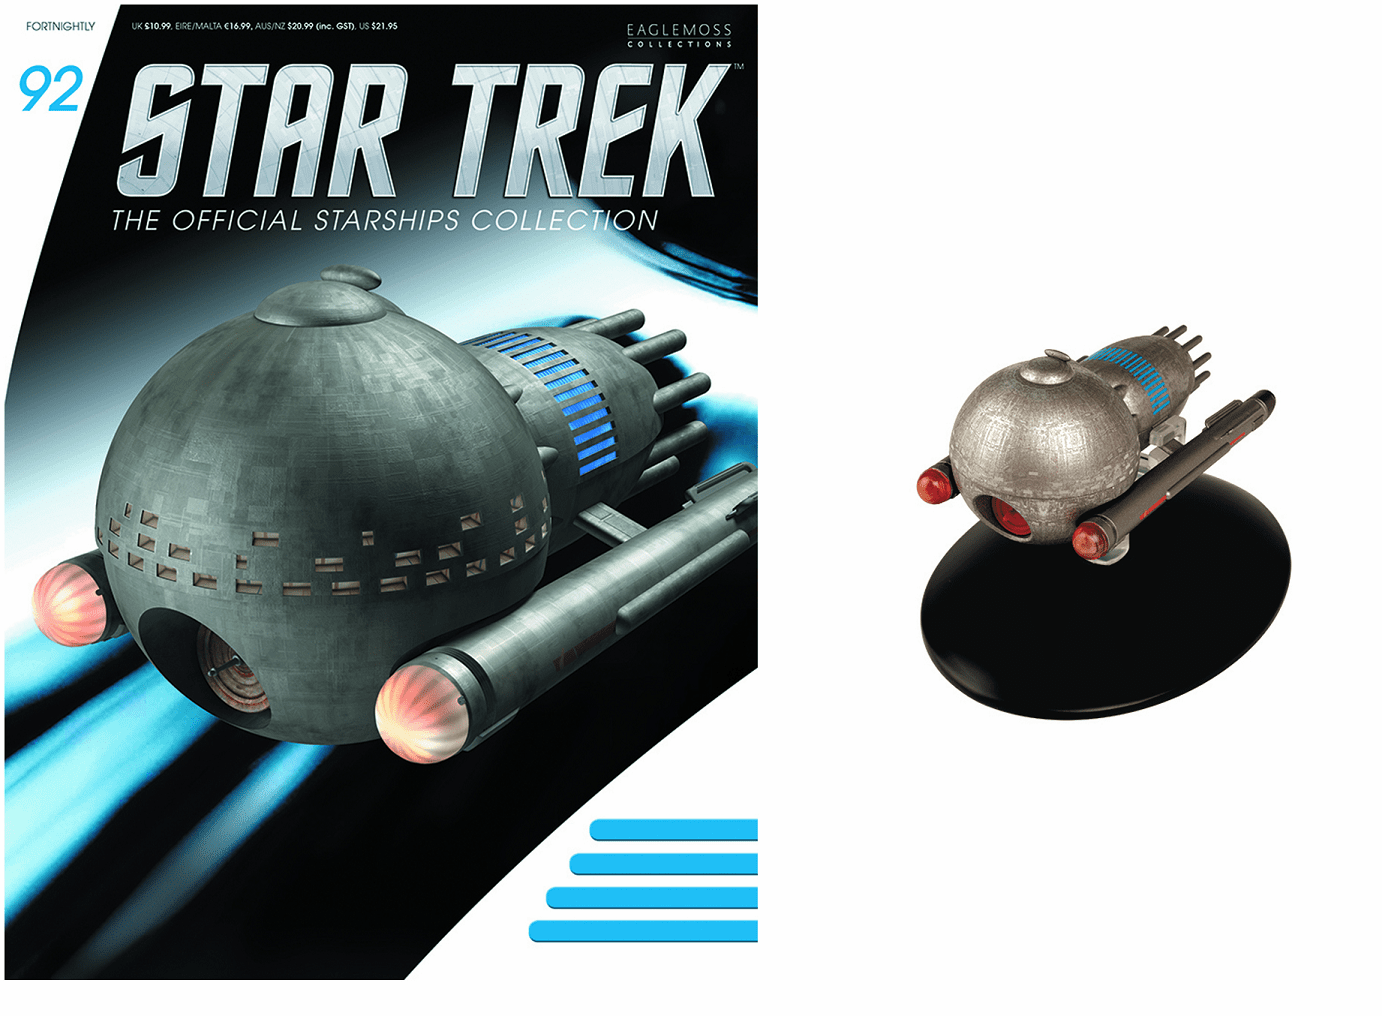 Eaglemoss Star Trek Ship Collection Magazine 92 Medusan Ship